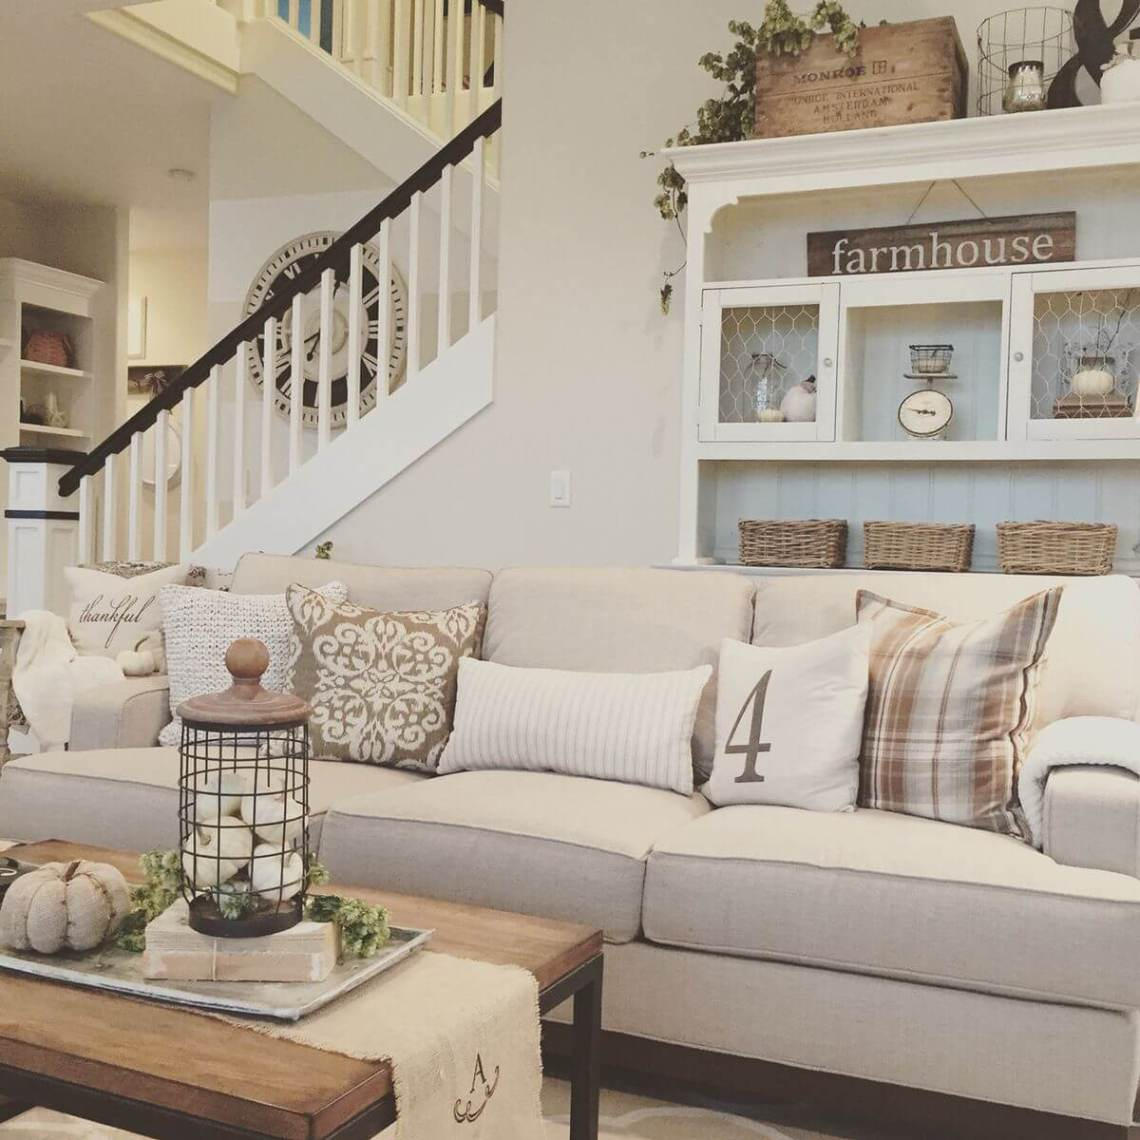 50 Best Farmhouse Living Room Decor Ideas And Designs For 2021